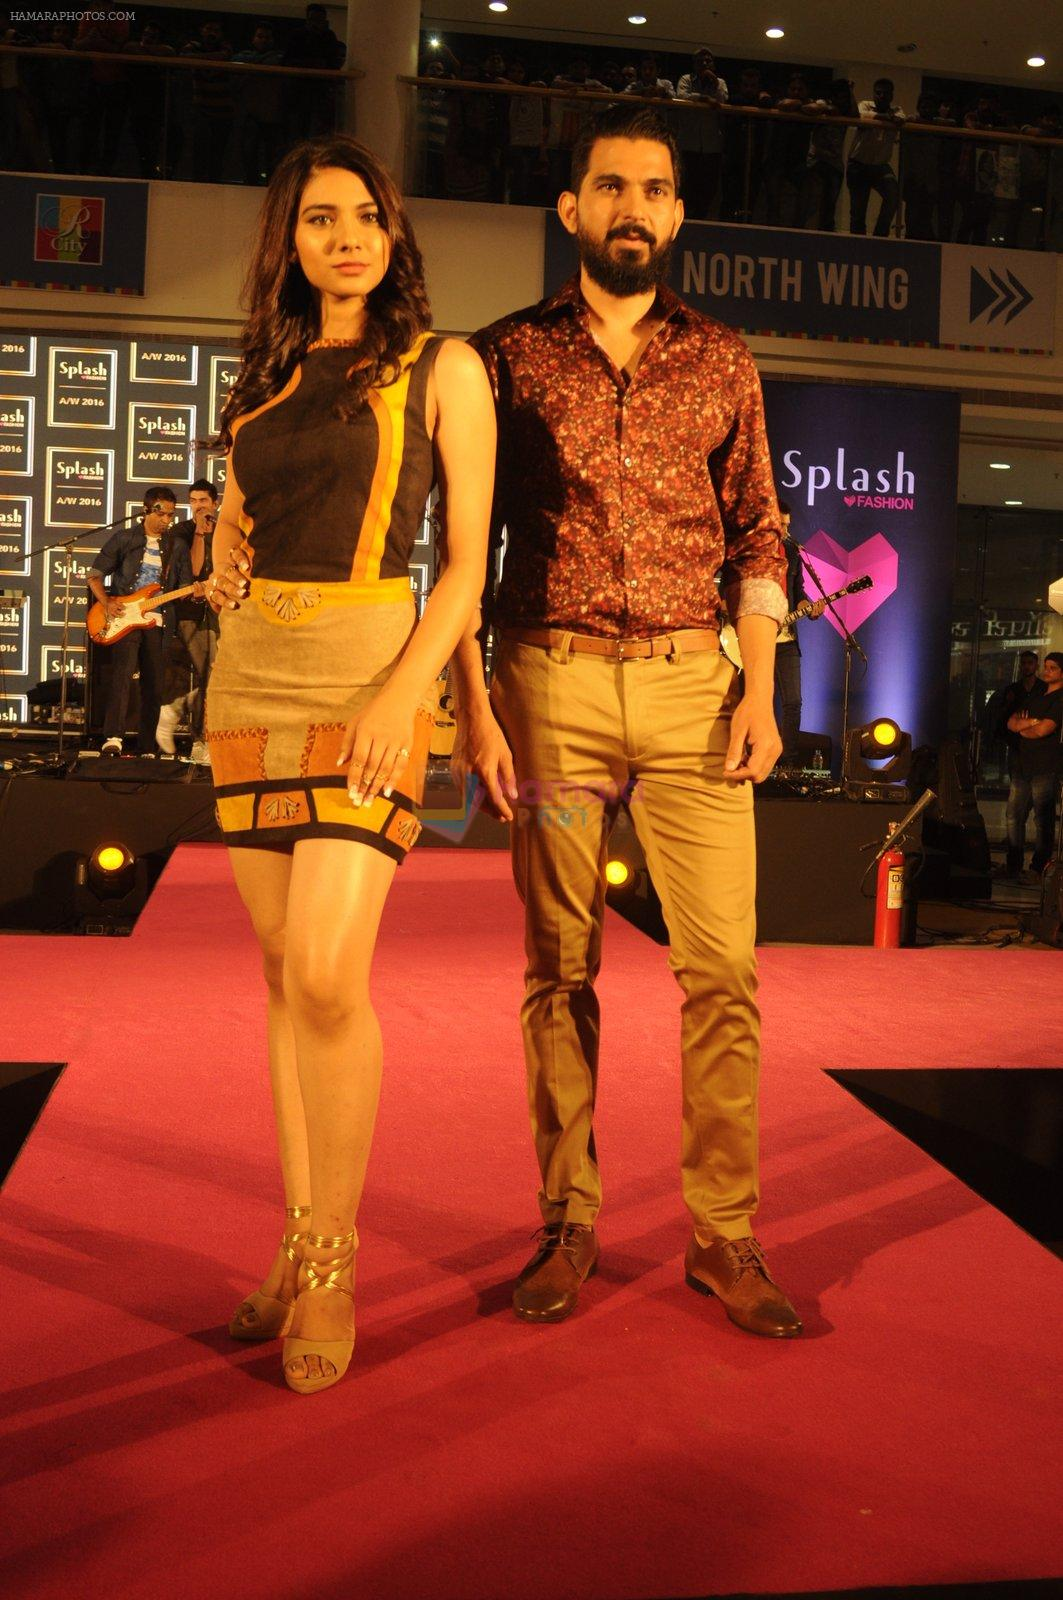 Splash fashion show in Mumbai on 10th Sept 2016